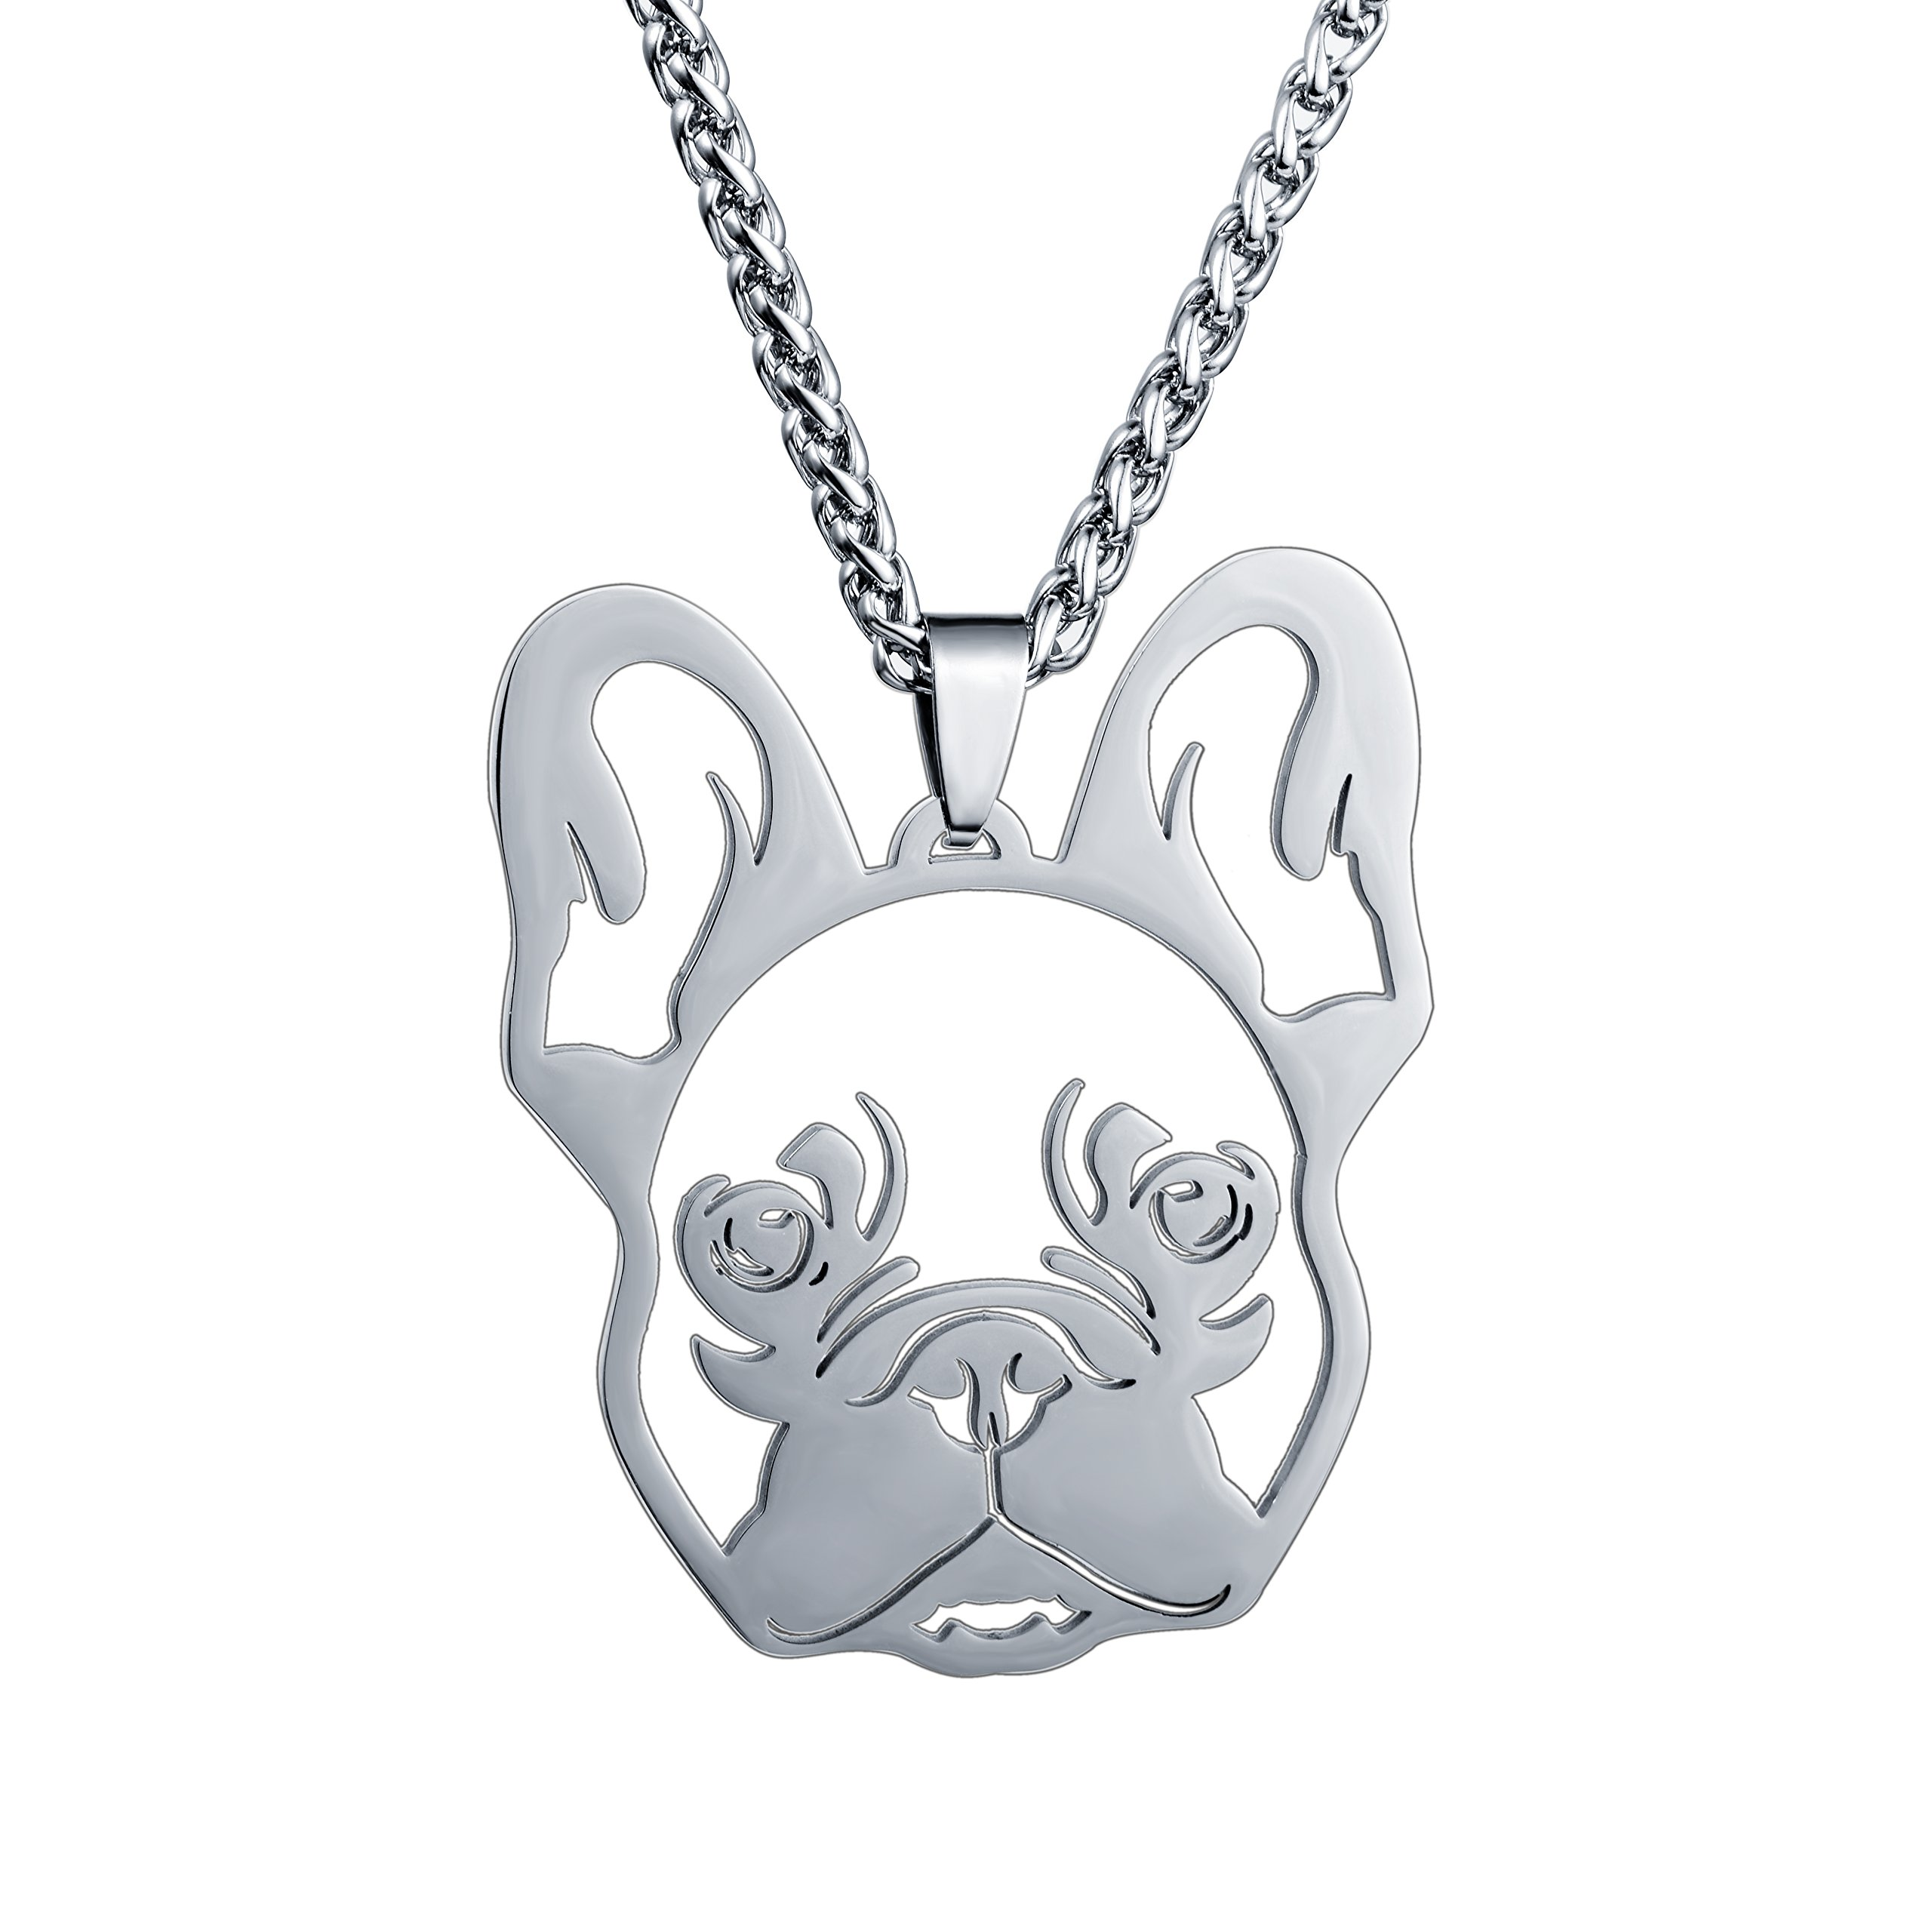 Stainless Steel French Bulldog Frenchie Bull Dog Head Face Pet Dog Charm Pendant Necklace